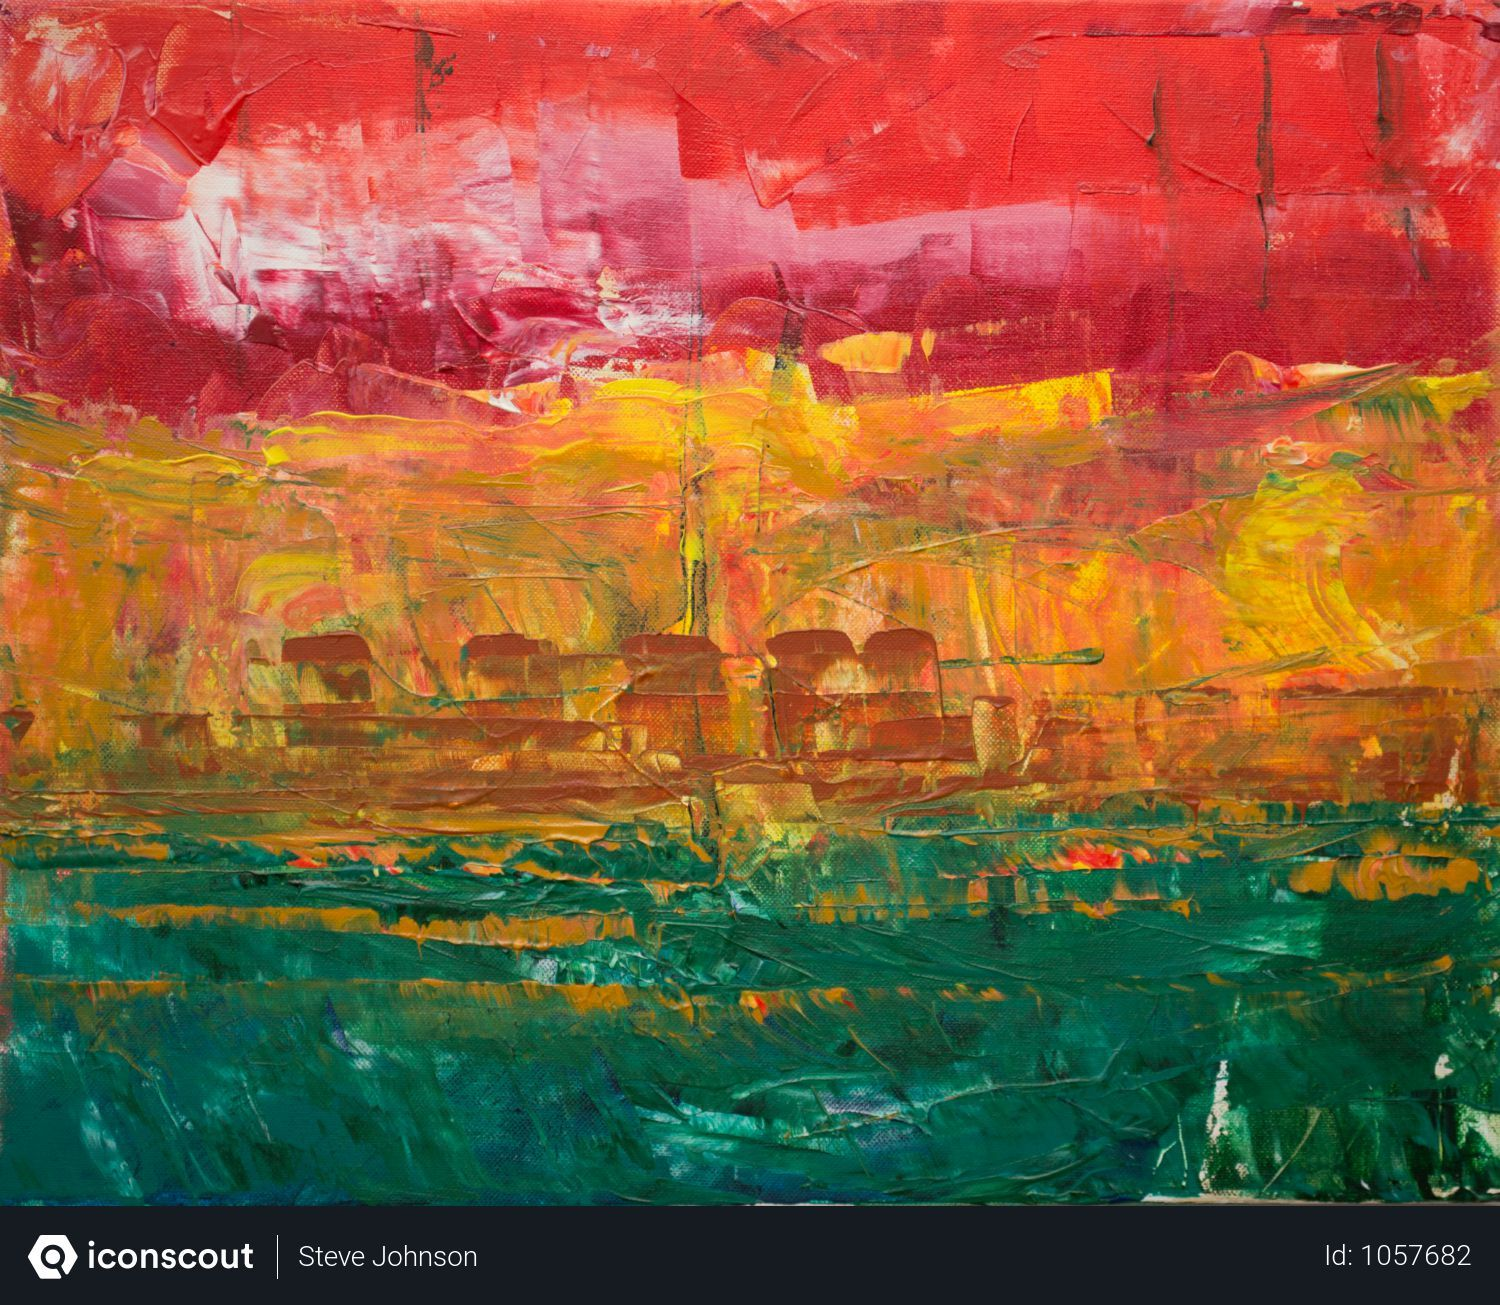 Free Abstract Expressionism Photo Download In PNG & JPG